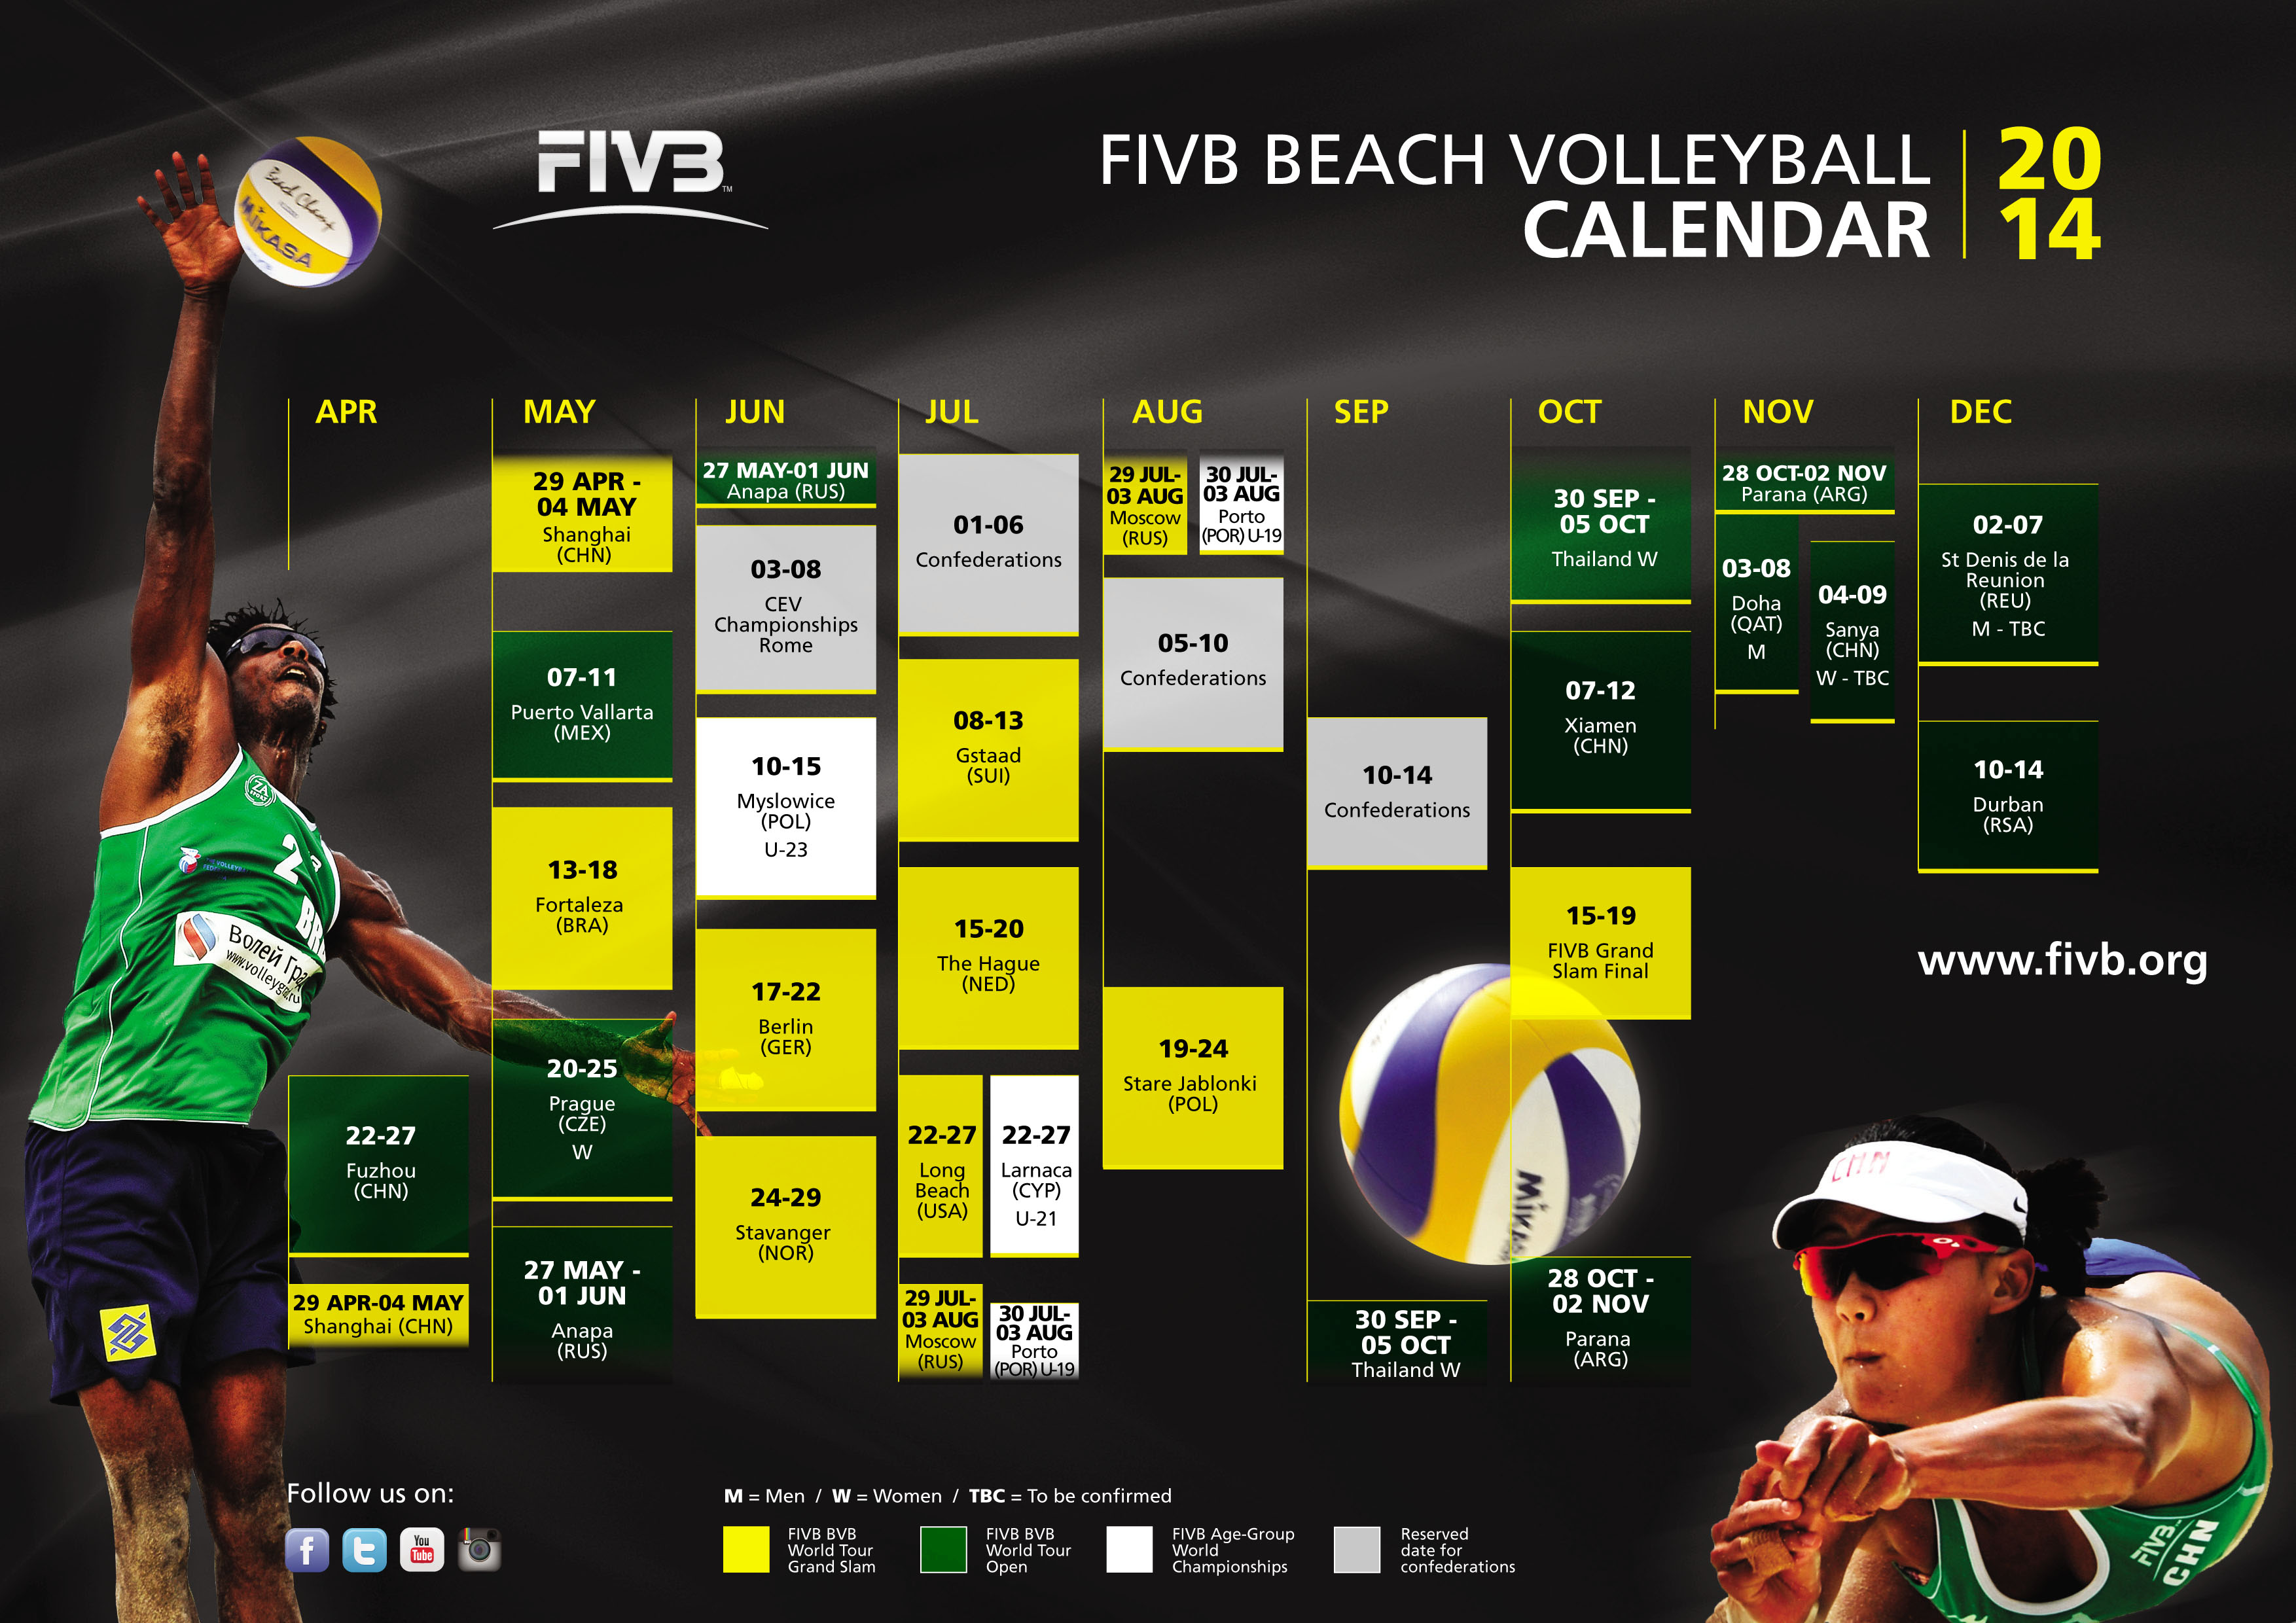 http://s5.picofile.com/file/8106577718/FIVB_Beach_Volleyball_Calendar_2014.jpg